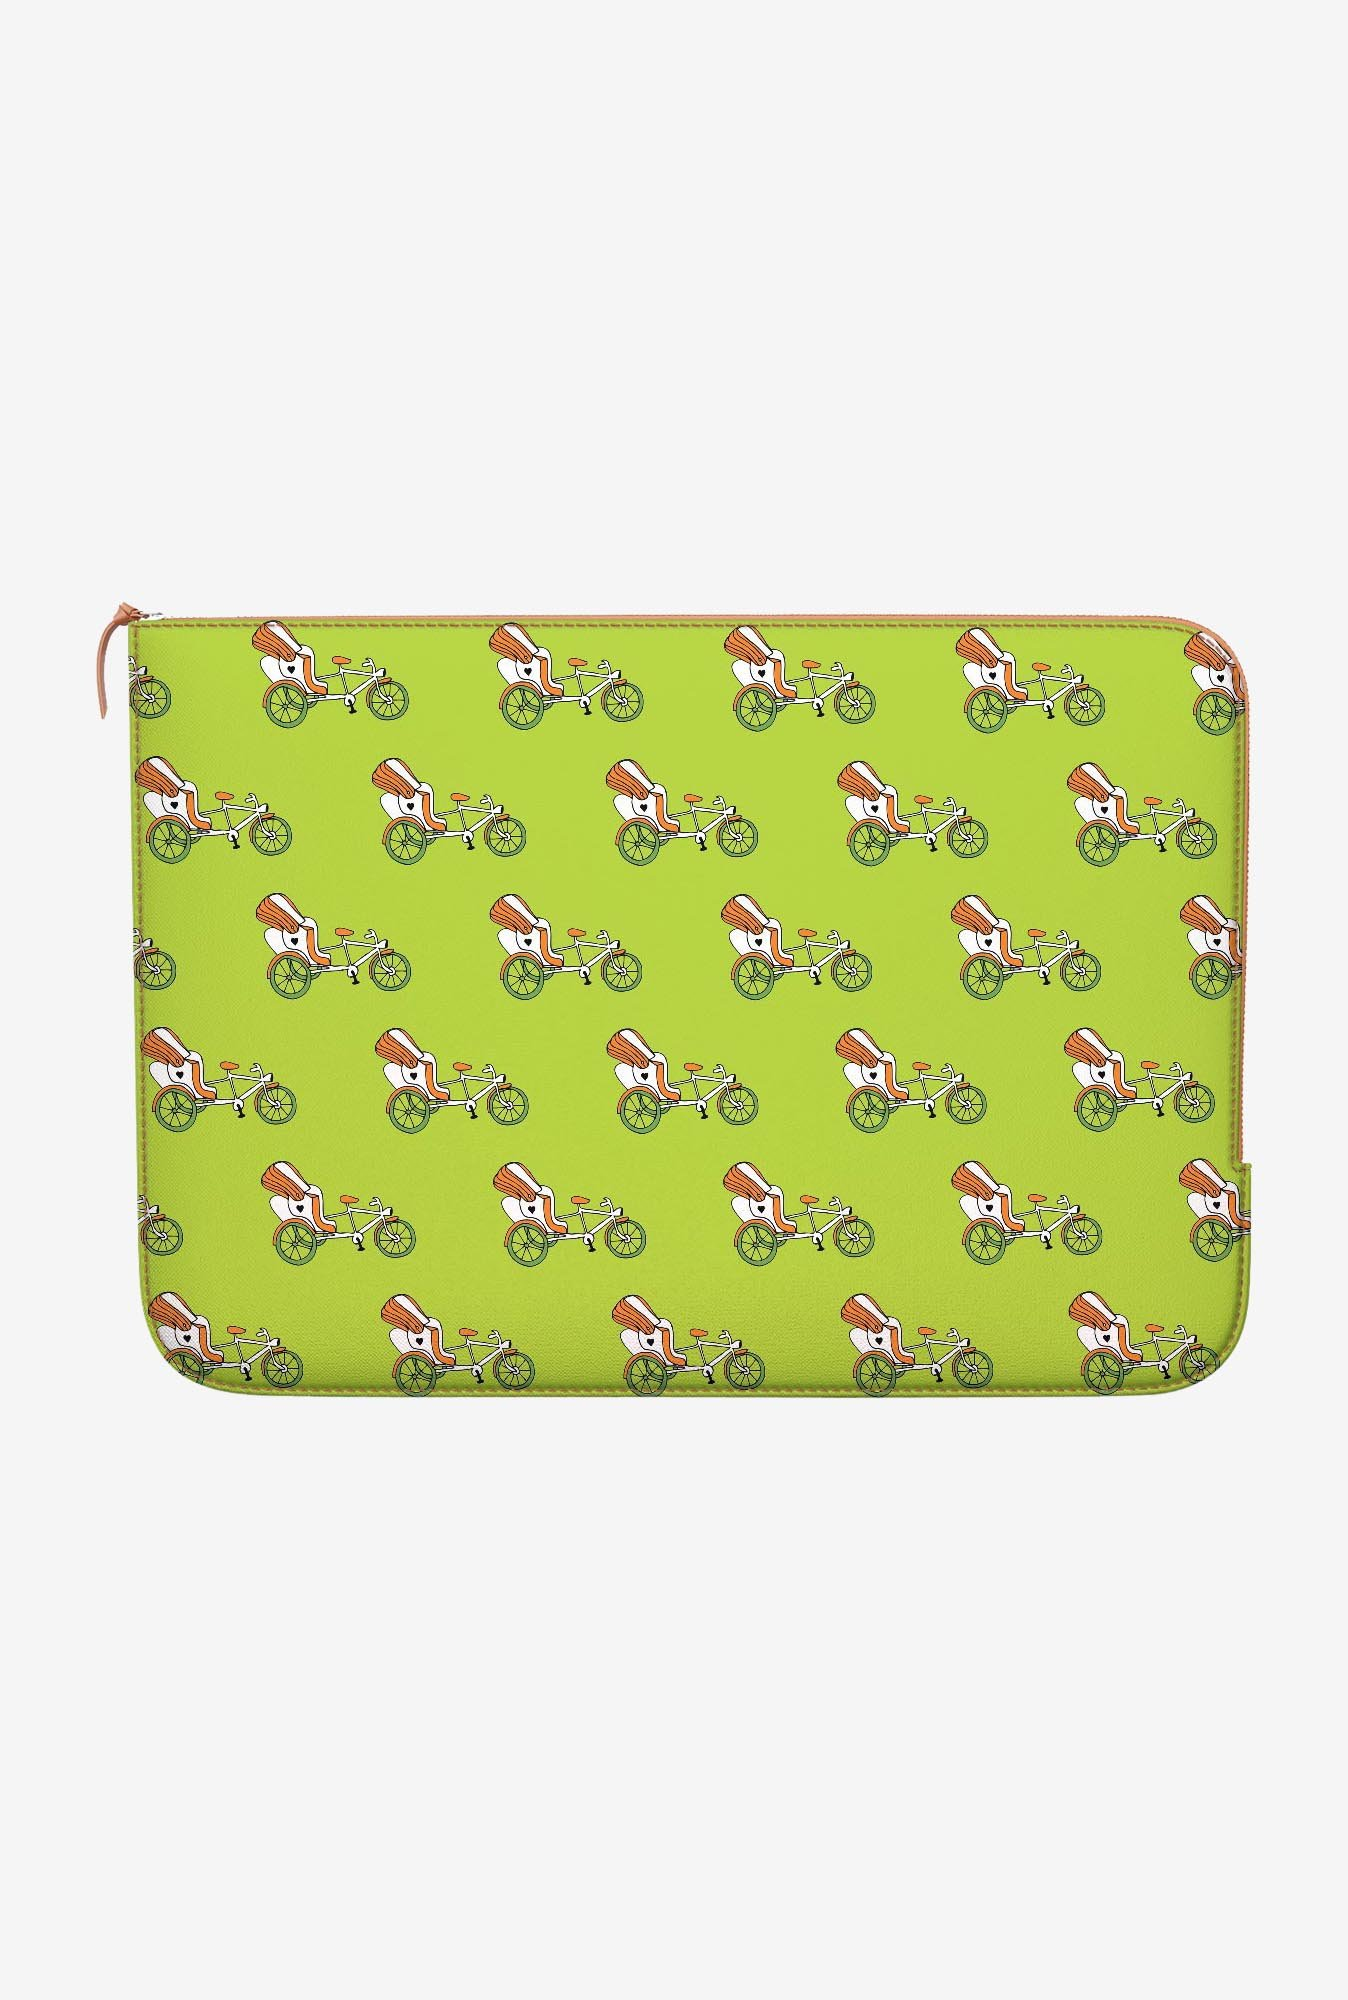 DailyObjects Green Rickshaw MacBook Air 11 Zippered Sleeve